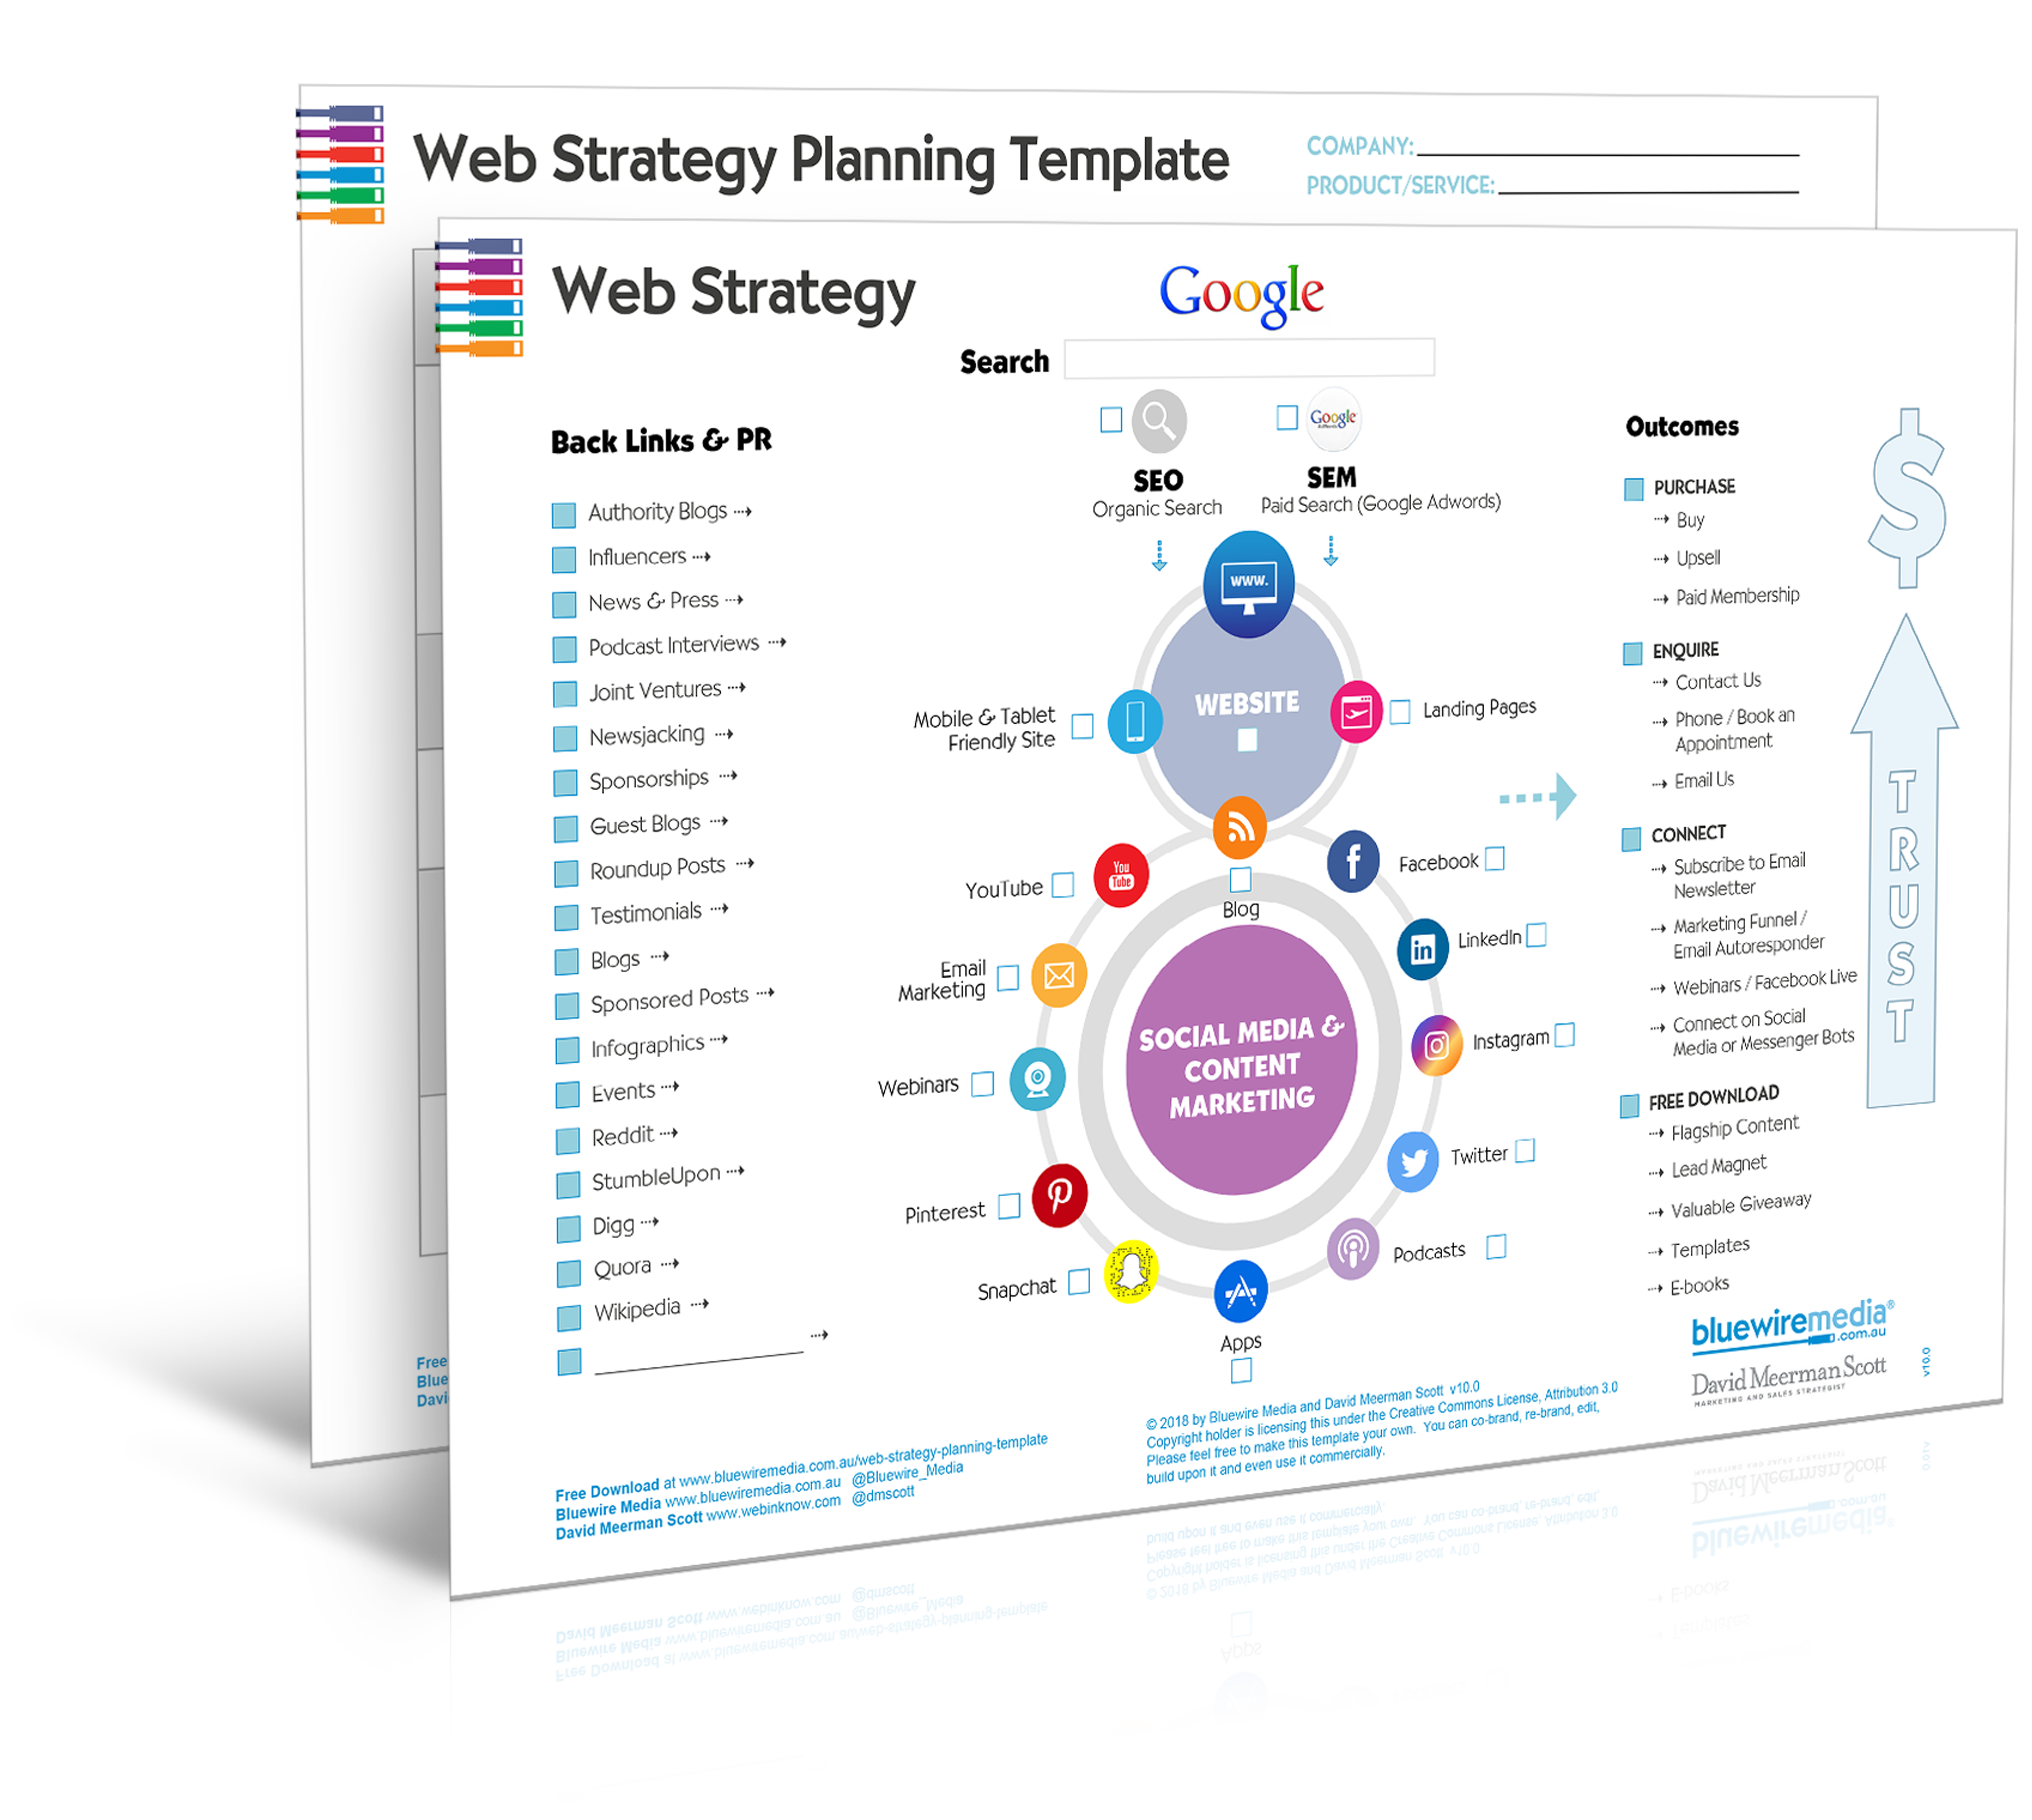 Digital online marketing web strategy planning template 2018 digital marketing strategy template for online business marketing free pdf download cheaphphosting